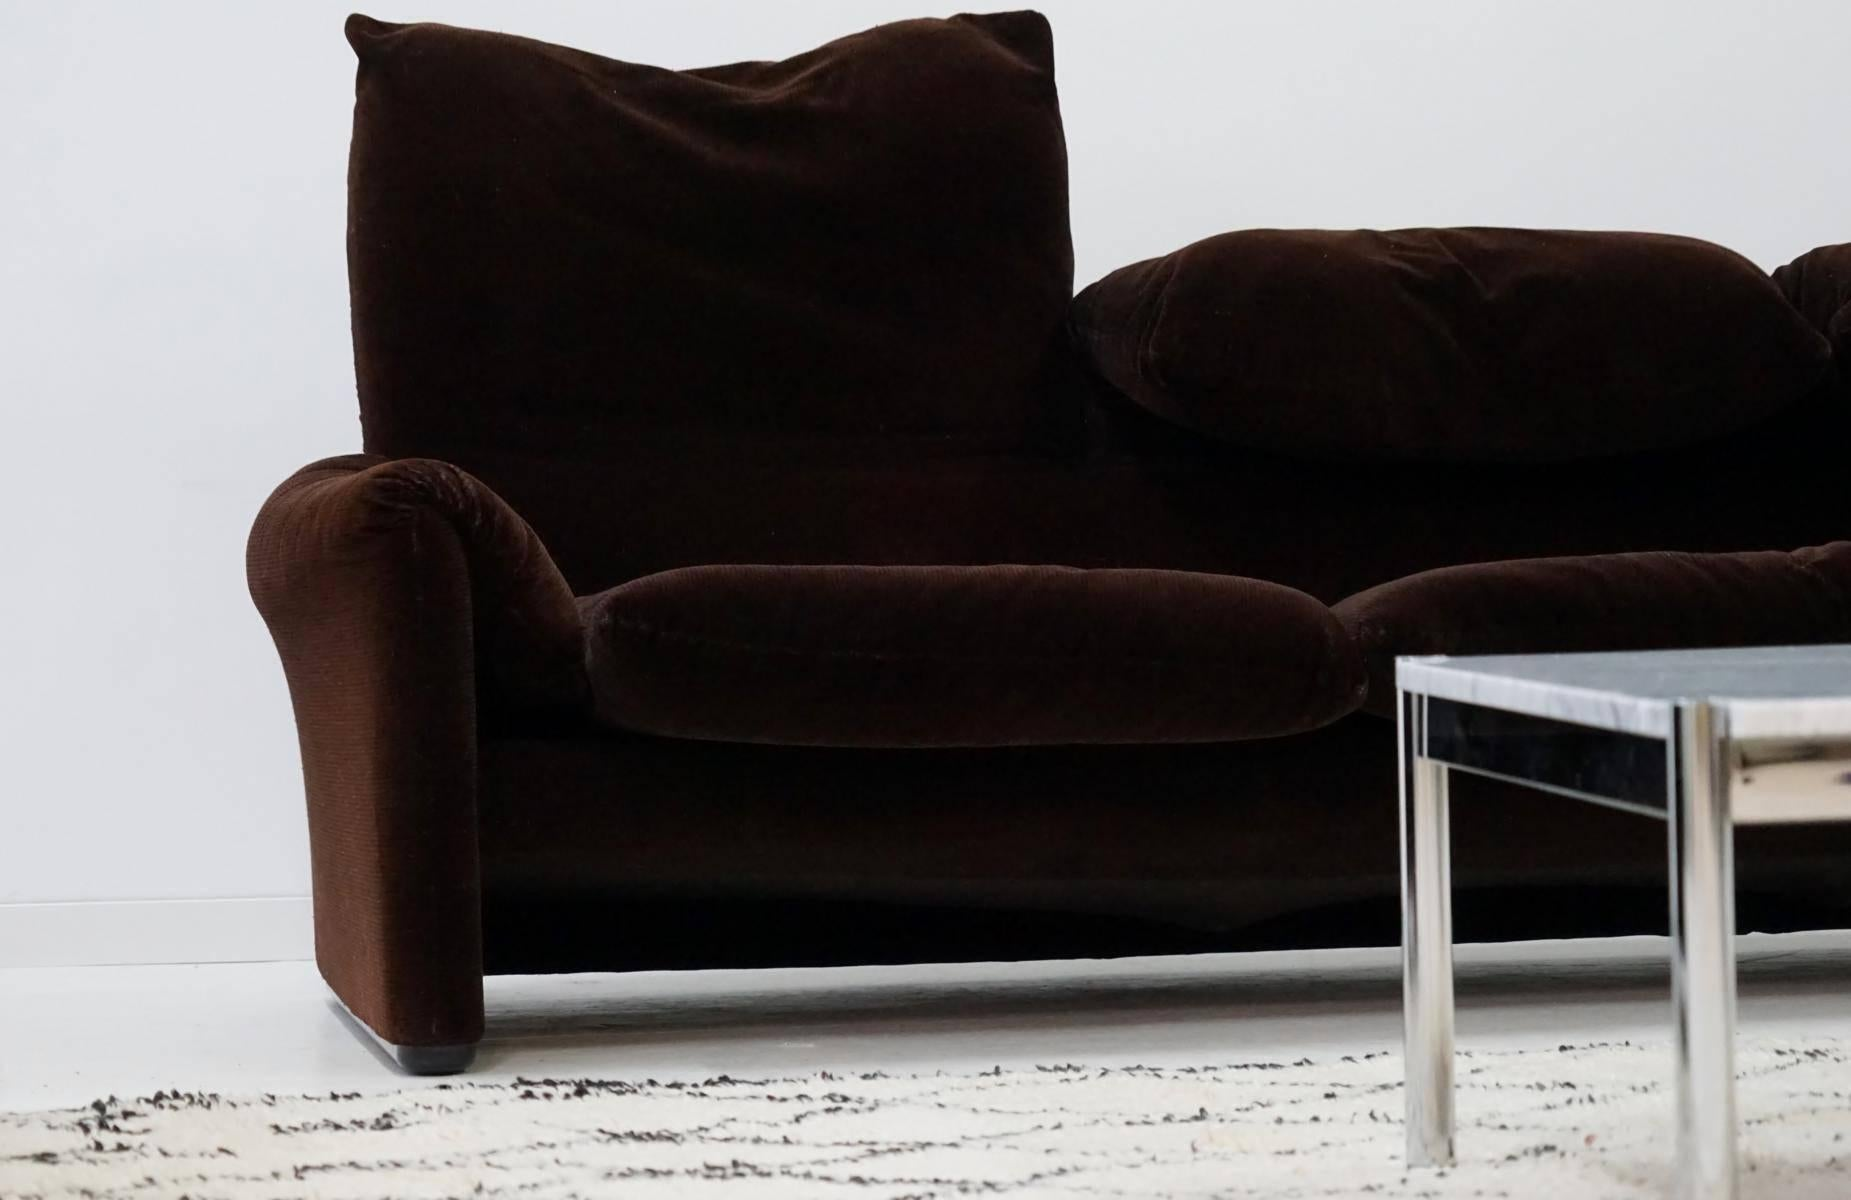 Three And Two Seat Maralunga For Cina Design Function Canapé Couch At 1stdibs